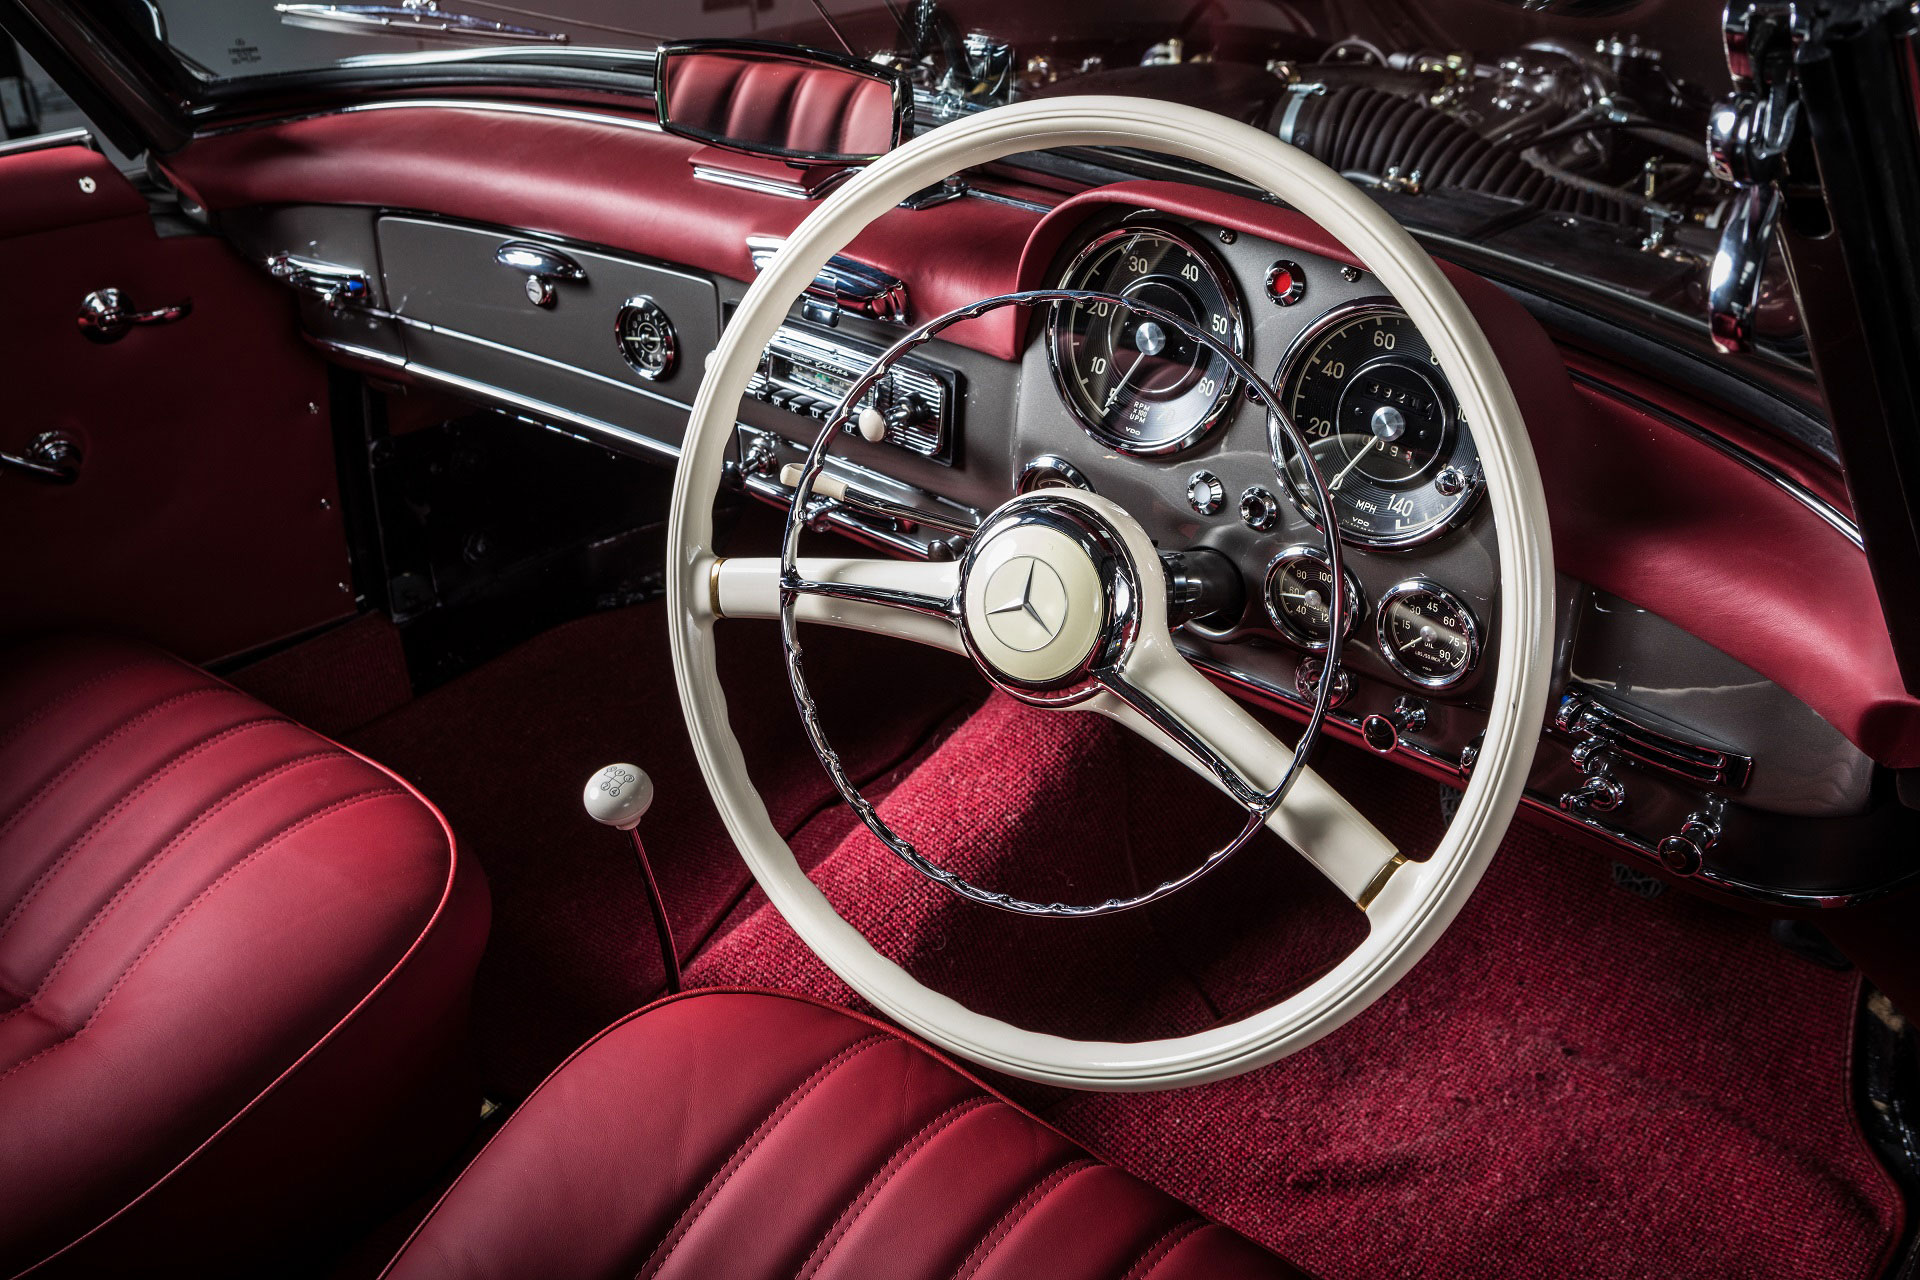 Classic 1963 Mercedes-Benz W121 190SL Roadster with red interior